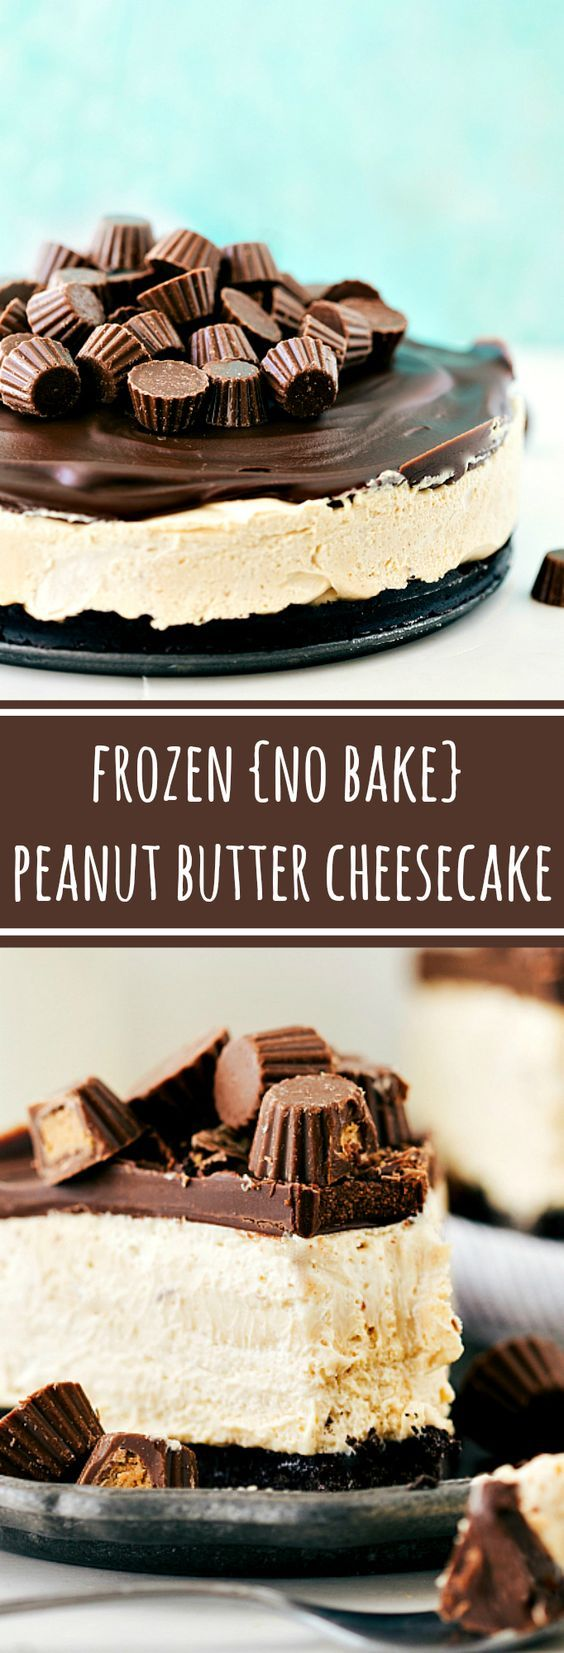 25+ best ideas about Reese's peanut butter cheesecake on ...